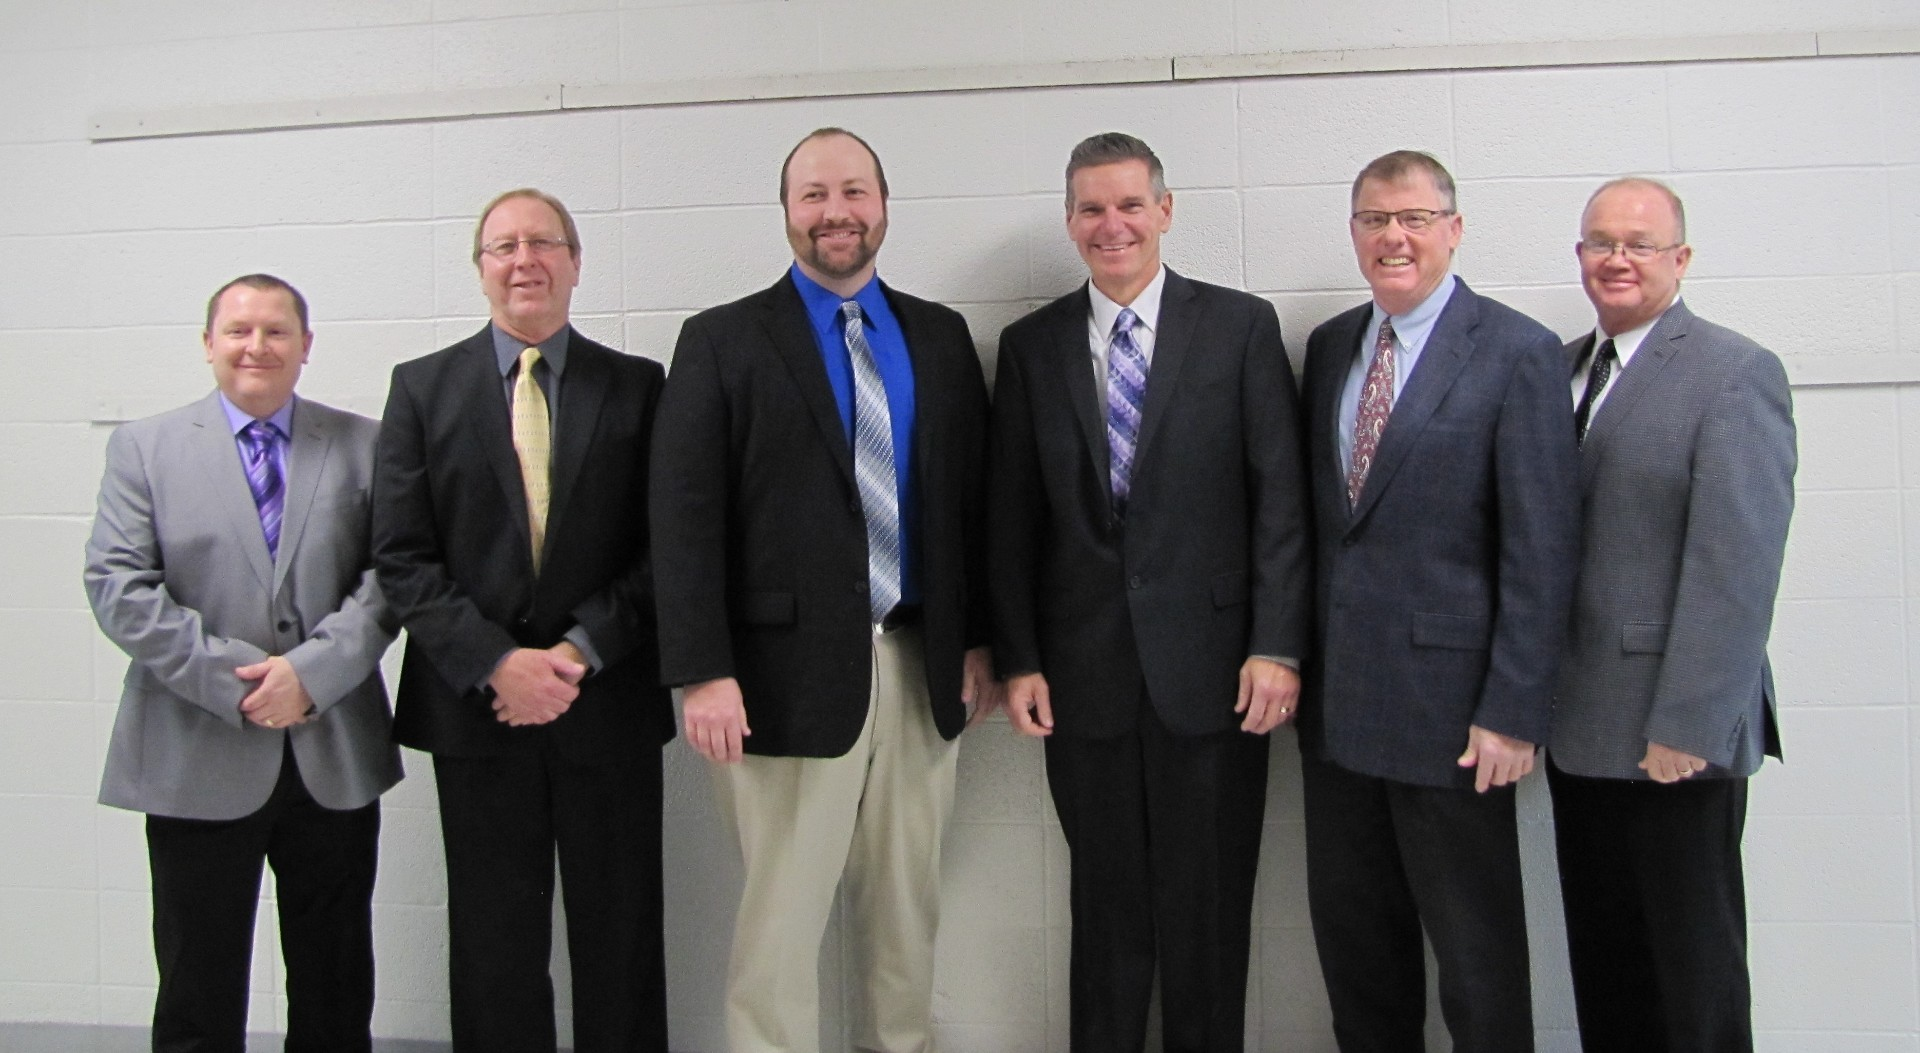 Photo of the BOARD MEMBERS.